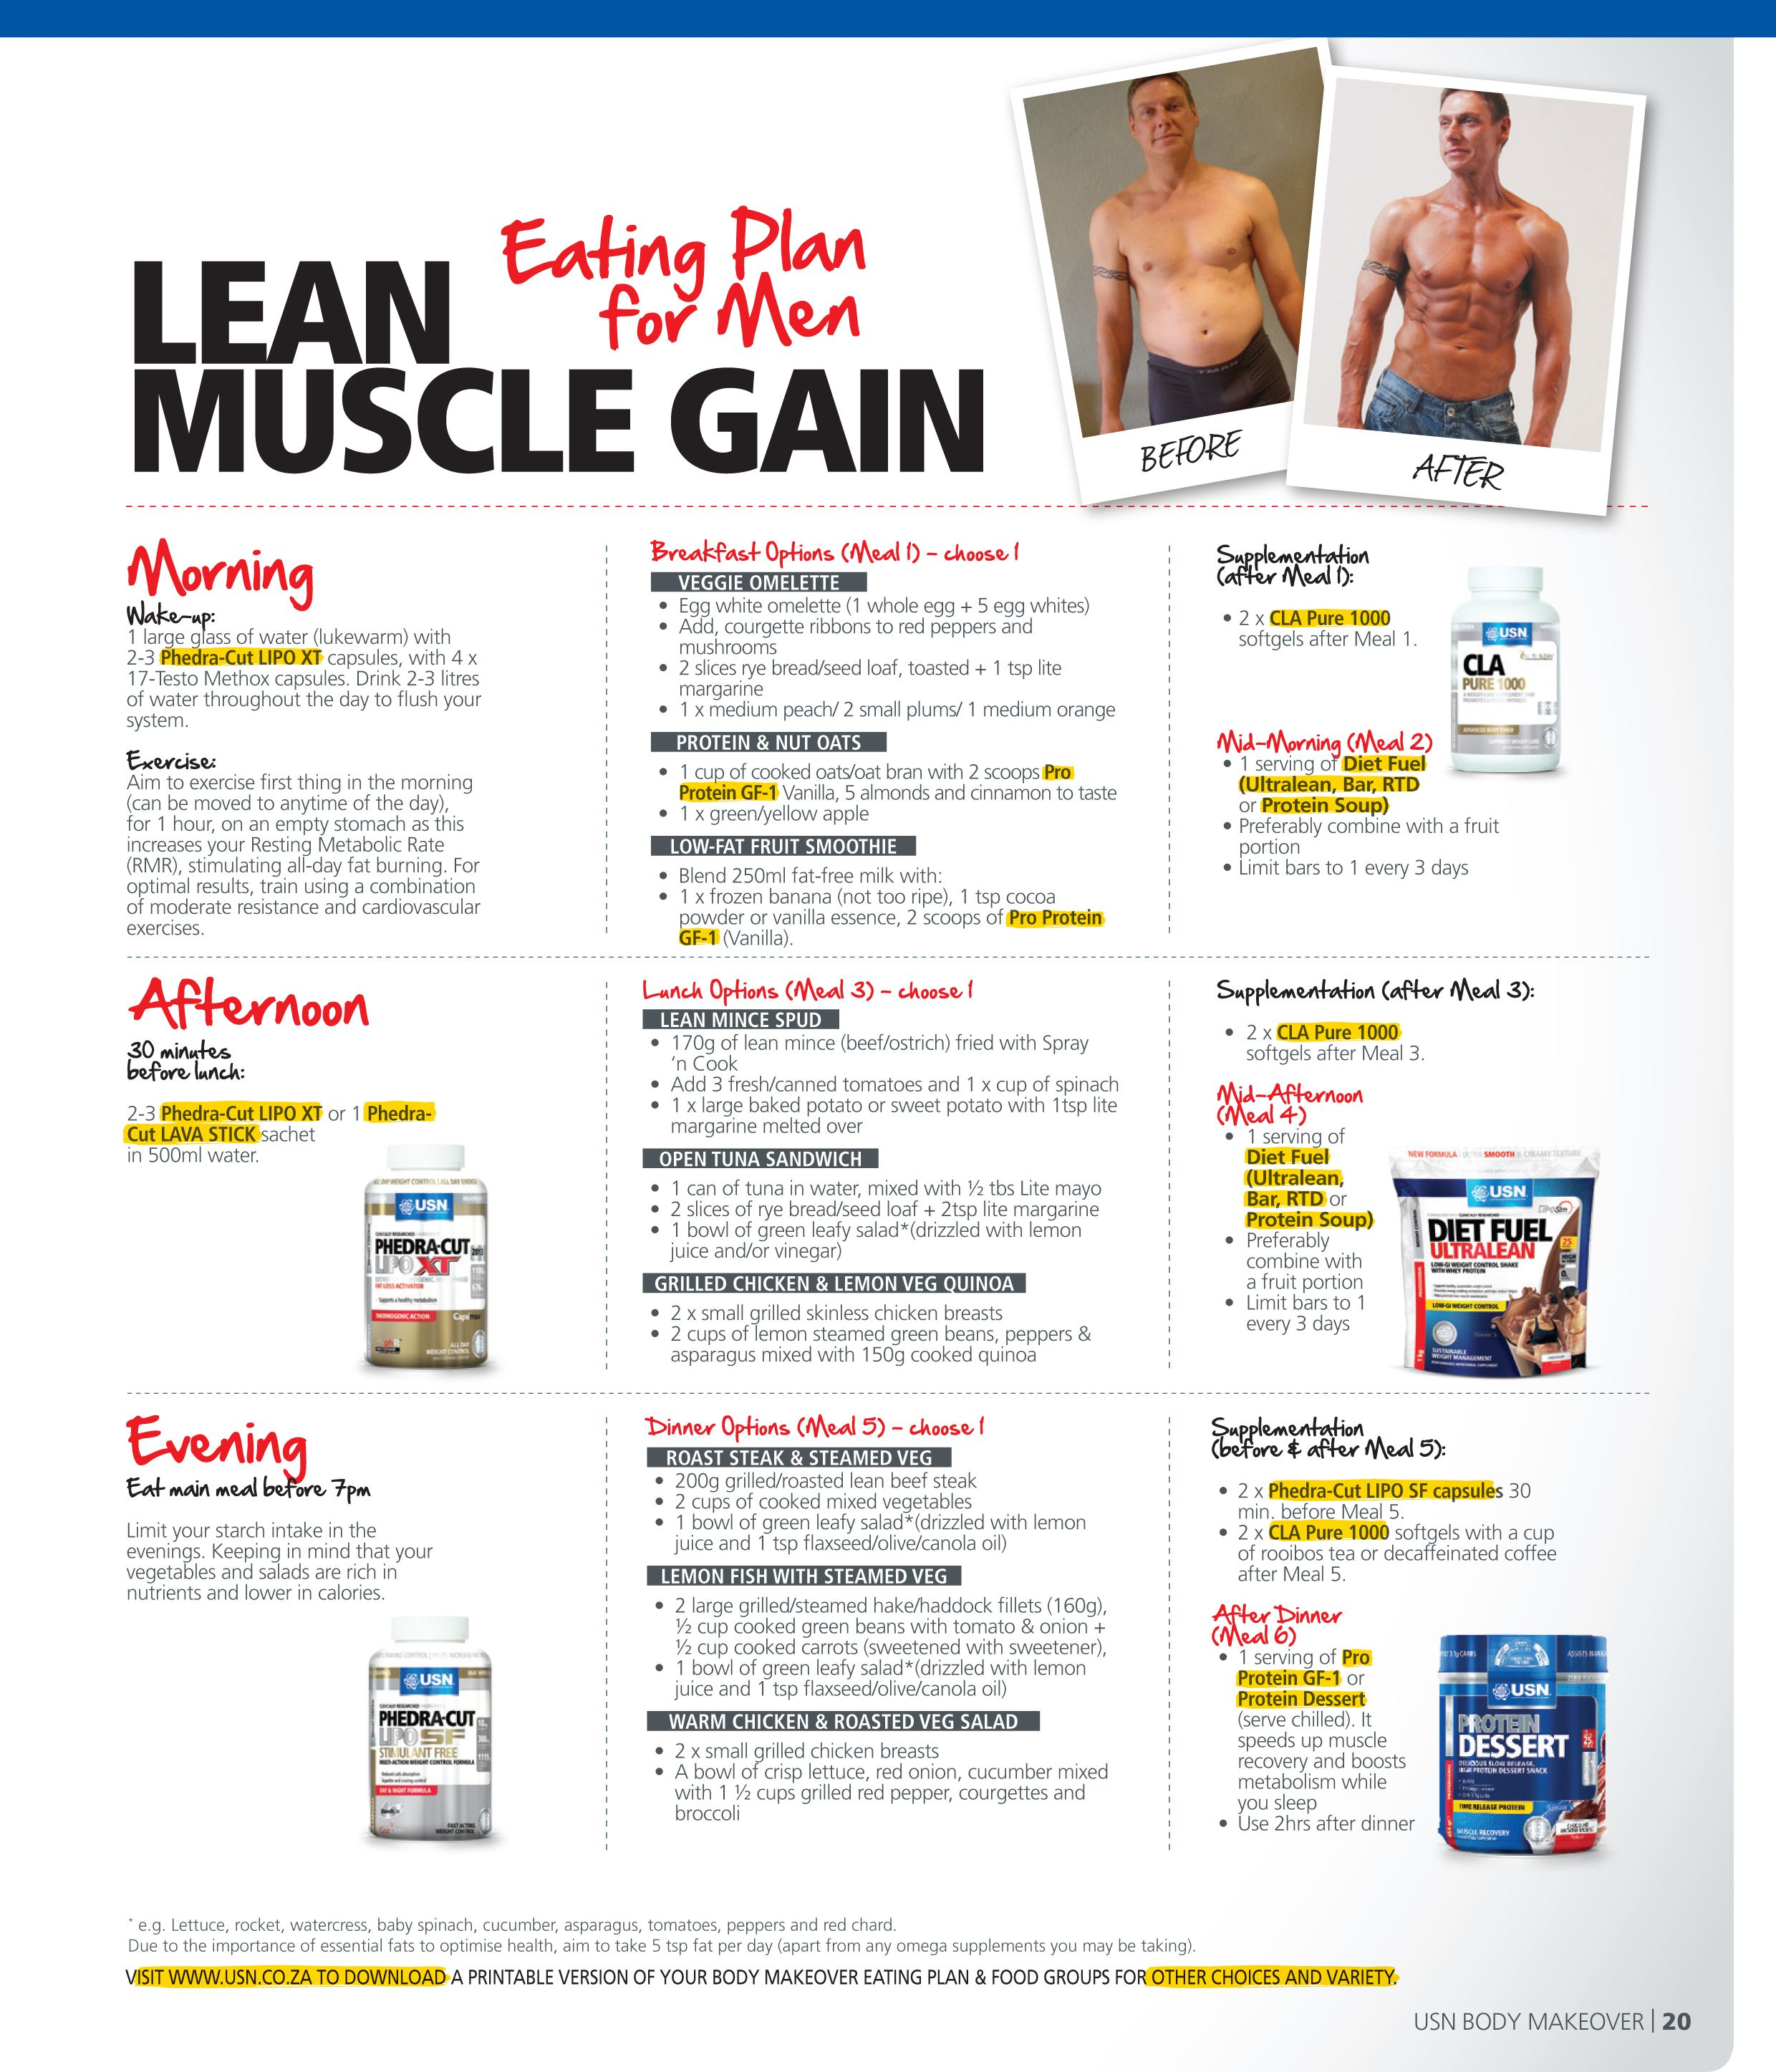 sample diet plan for lean muscle gain | salegoods | Pinterest | Weight loss, Fat and Meals